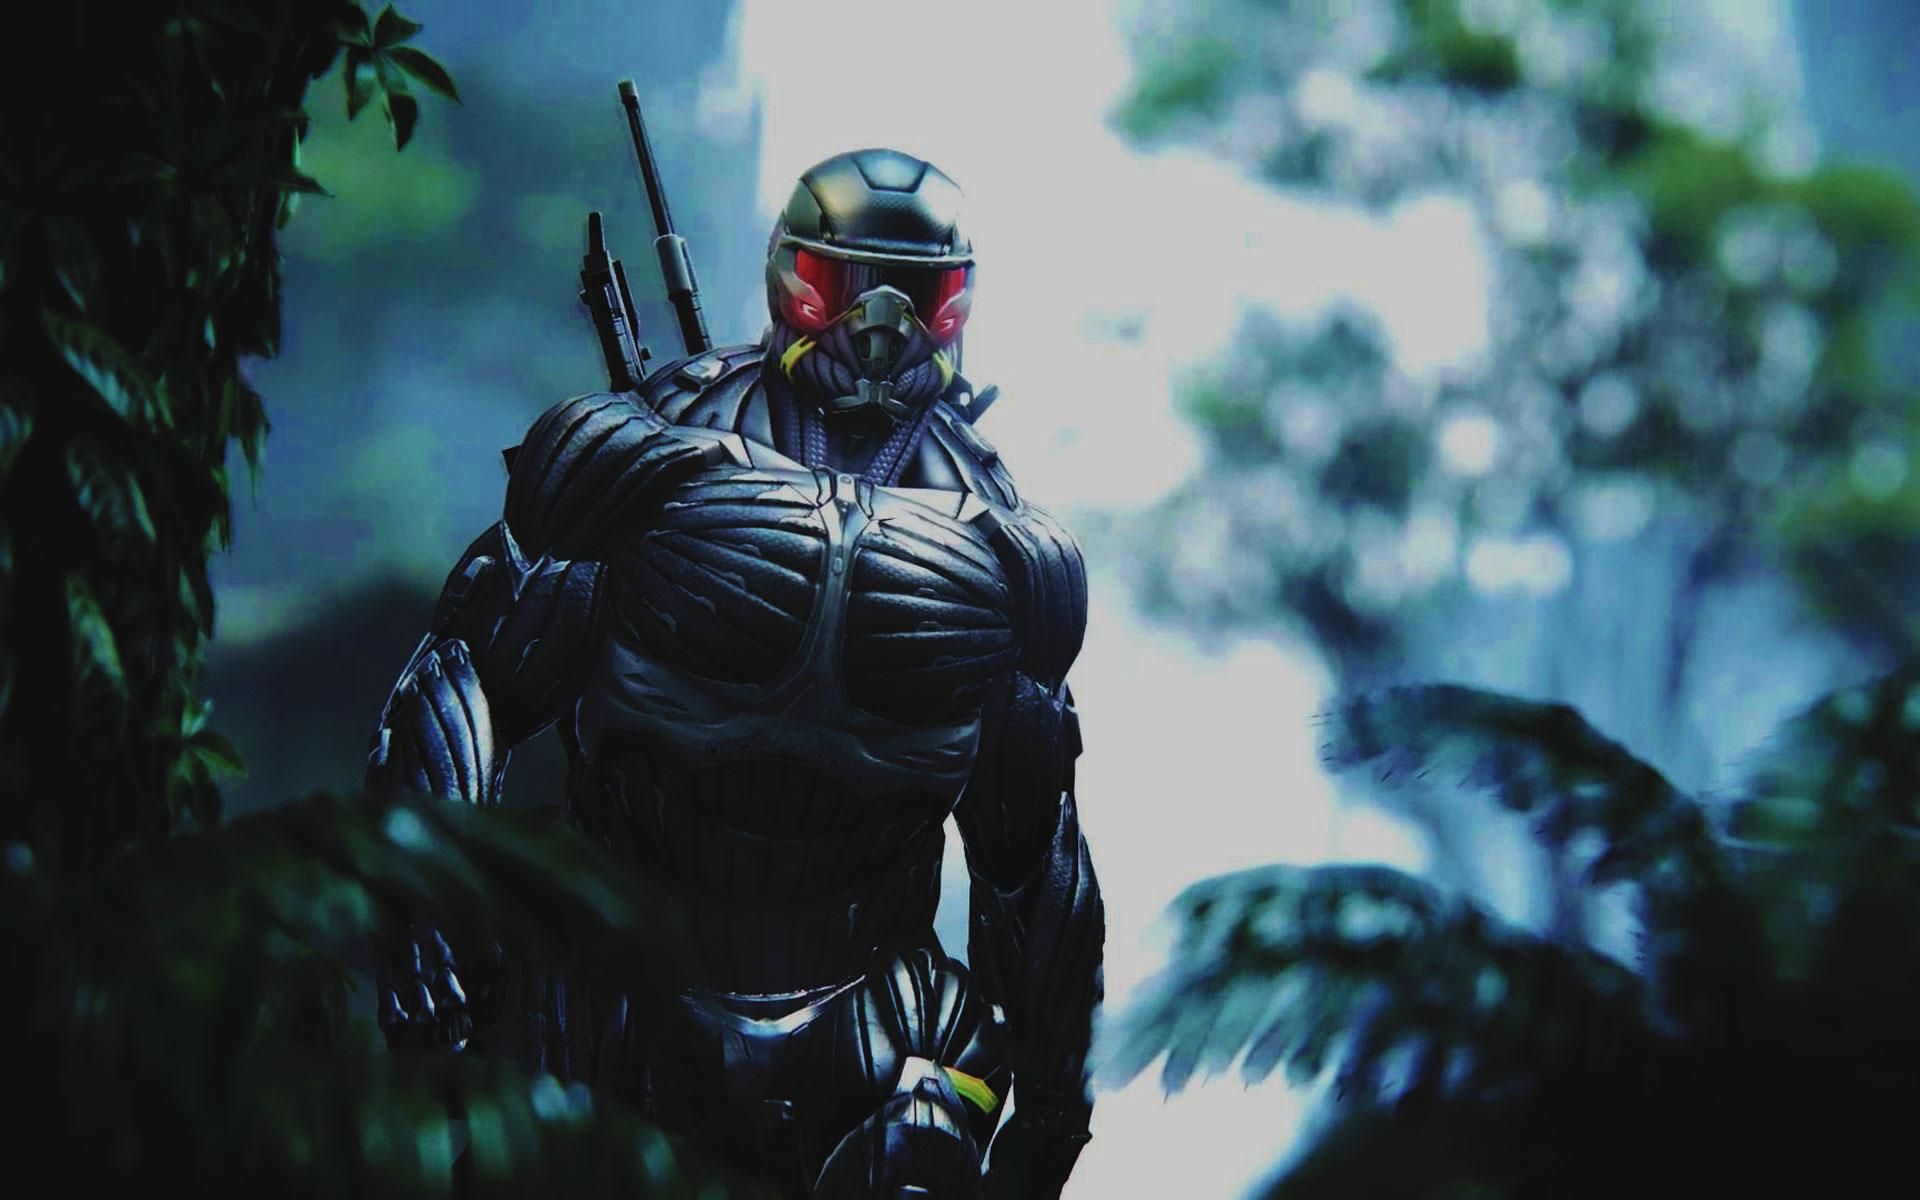 crysis hd wallpapers backgrounds wallpaper page 1920x1200